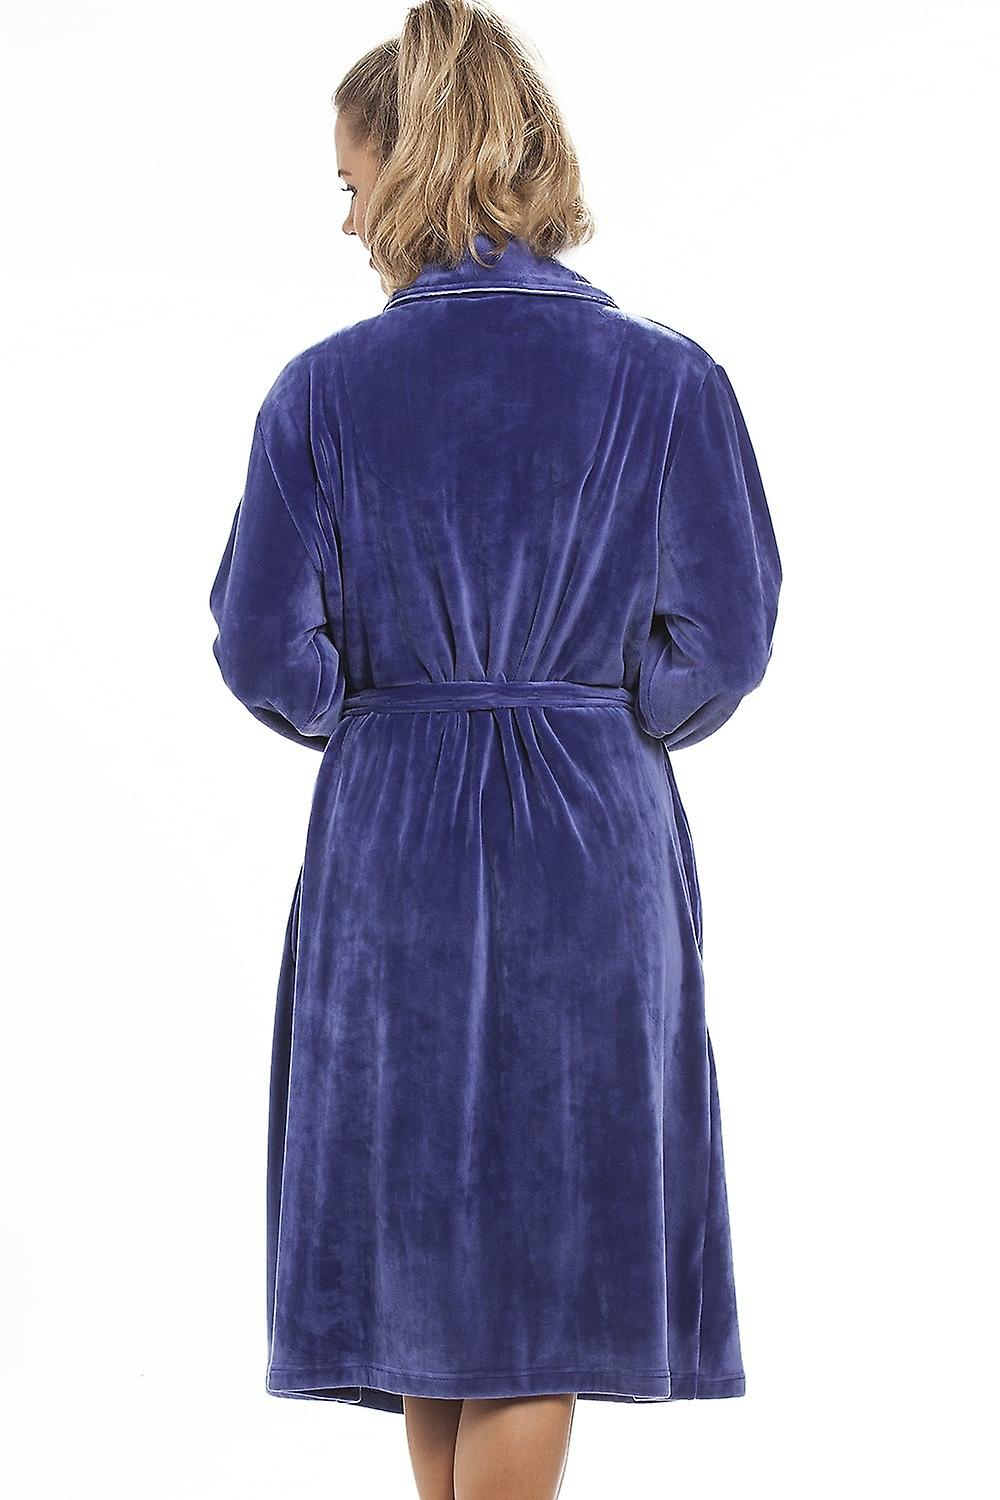 Camille Luxurious Heavy Weight Soft Purple Velour Dressing Gown